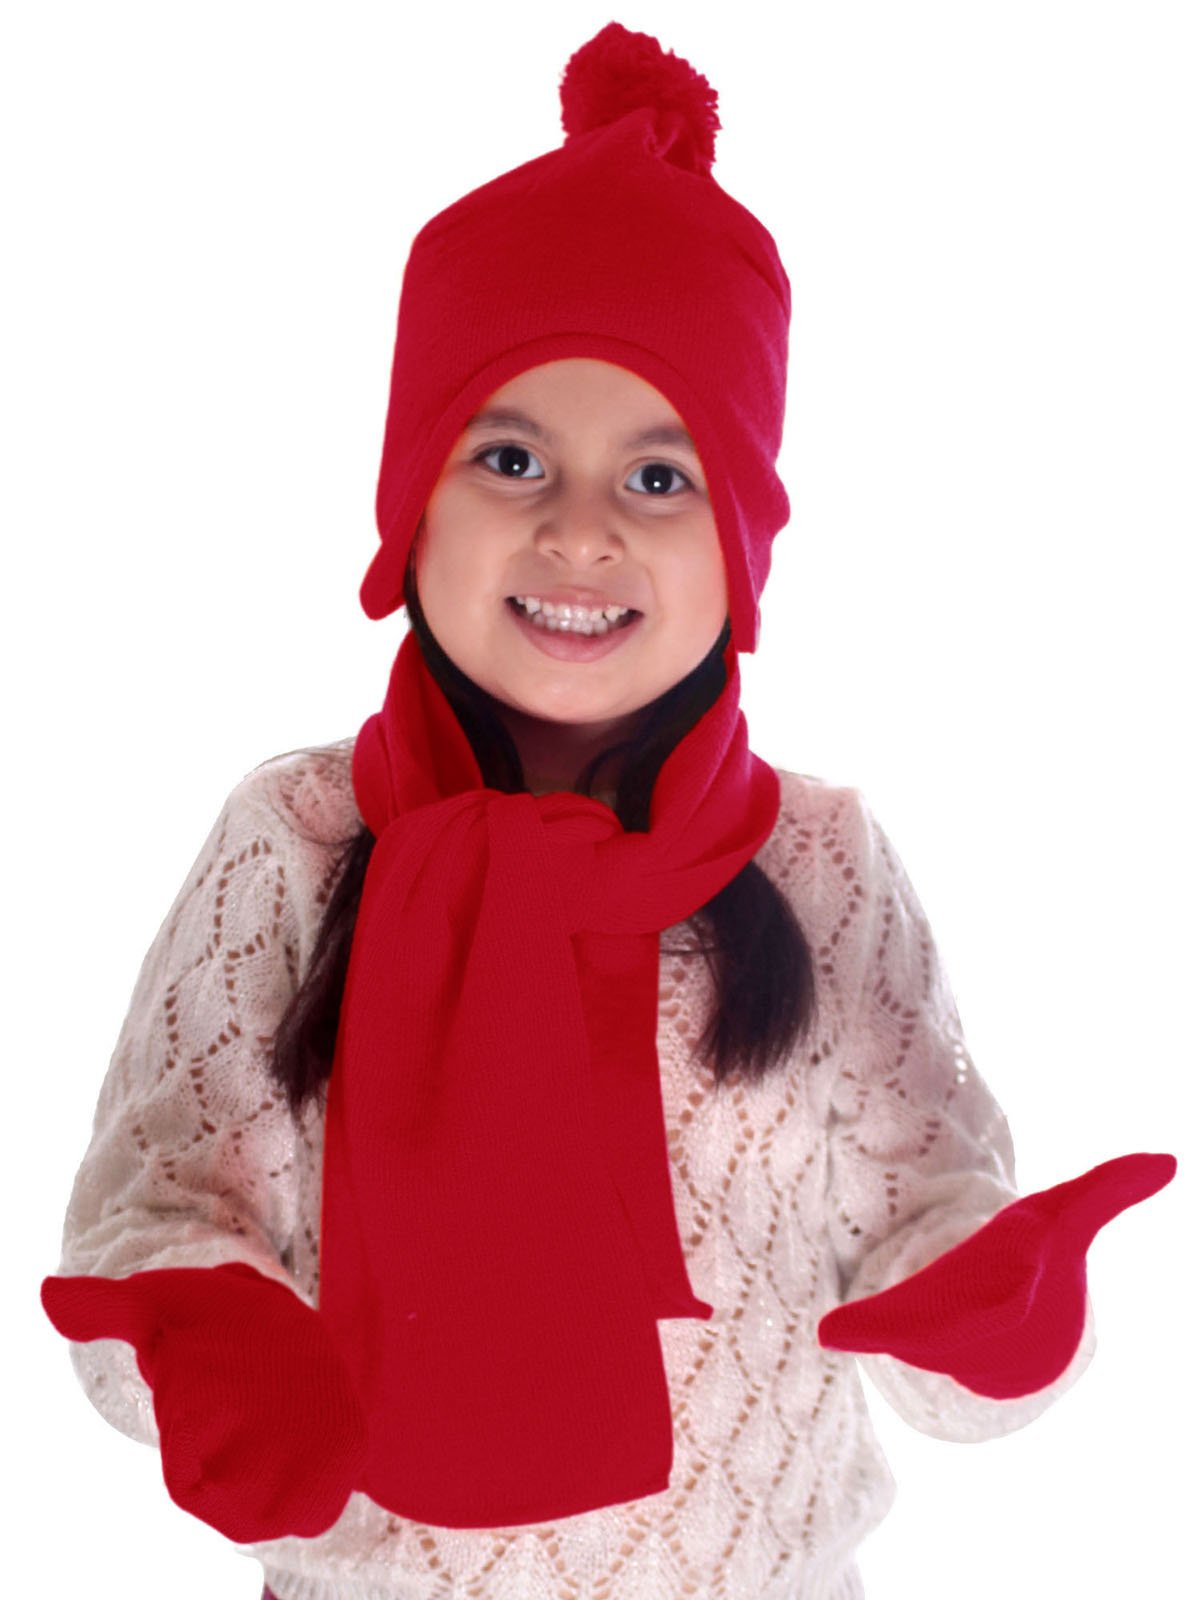 3 Pieces Winter Knit Fleece Pompom Beanie Hat, Scarf, & Glove Set, Red by YoungLove (Image #1)